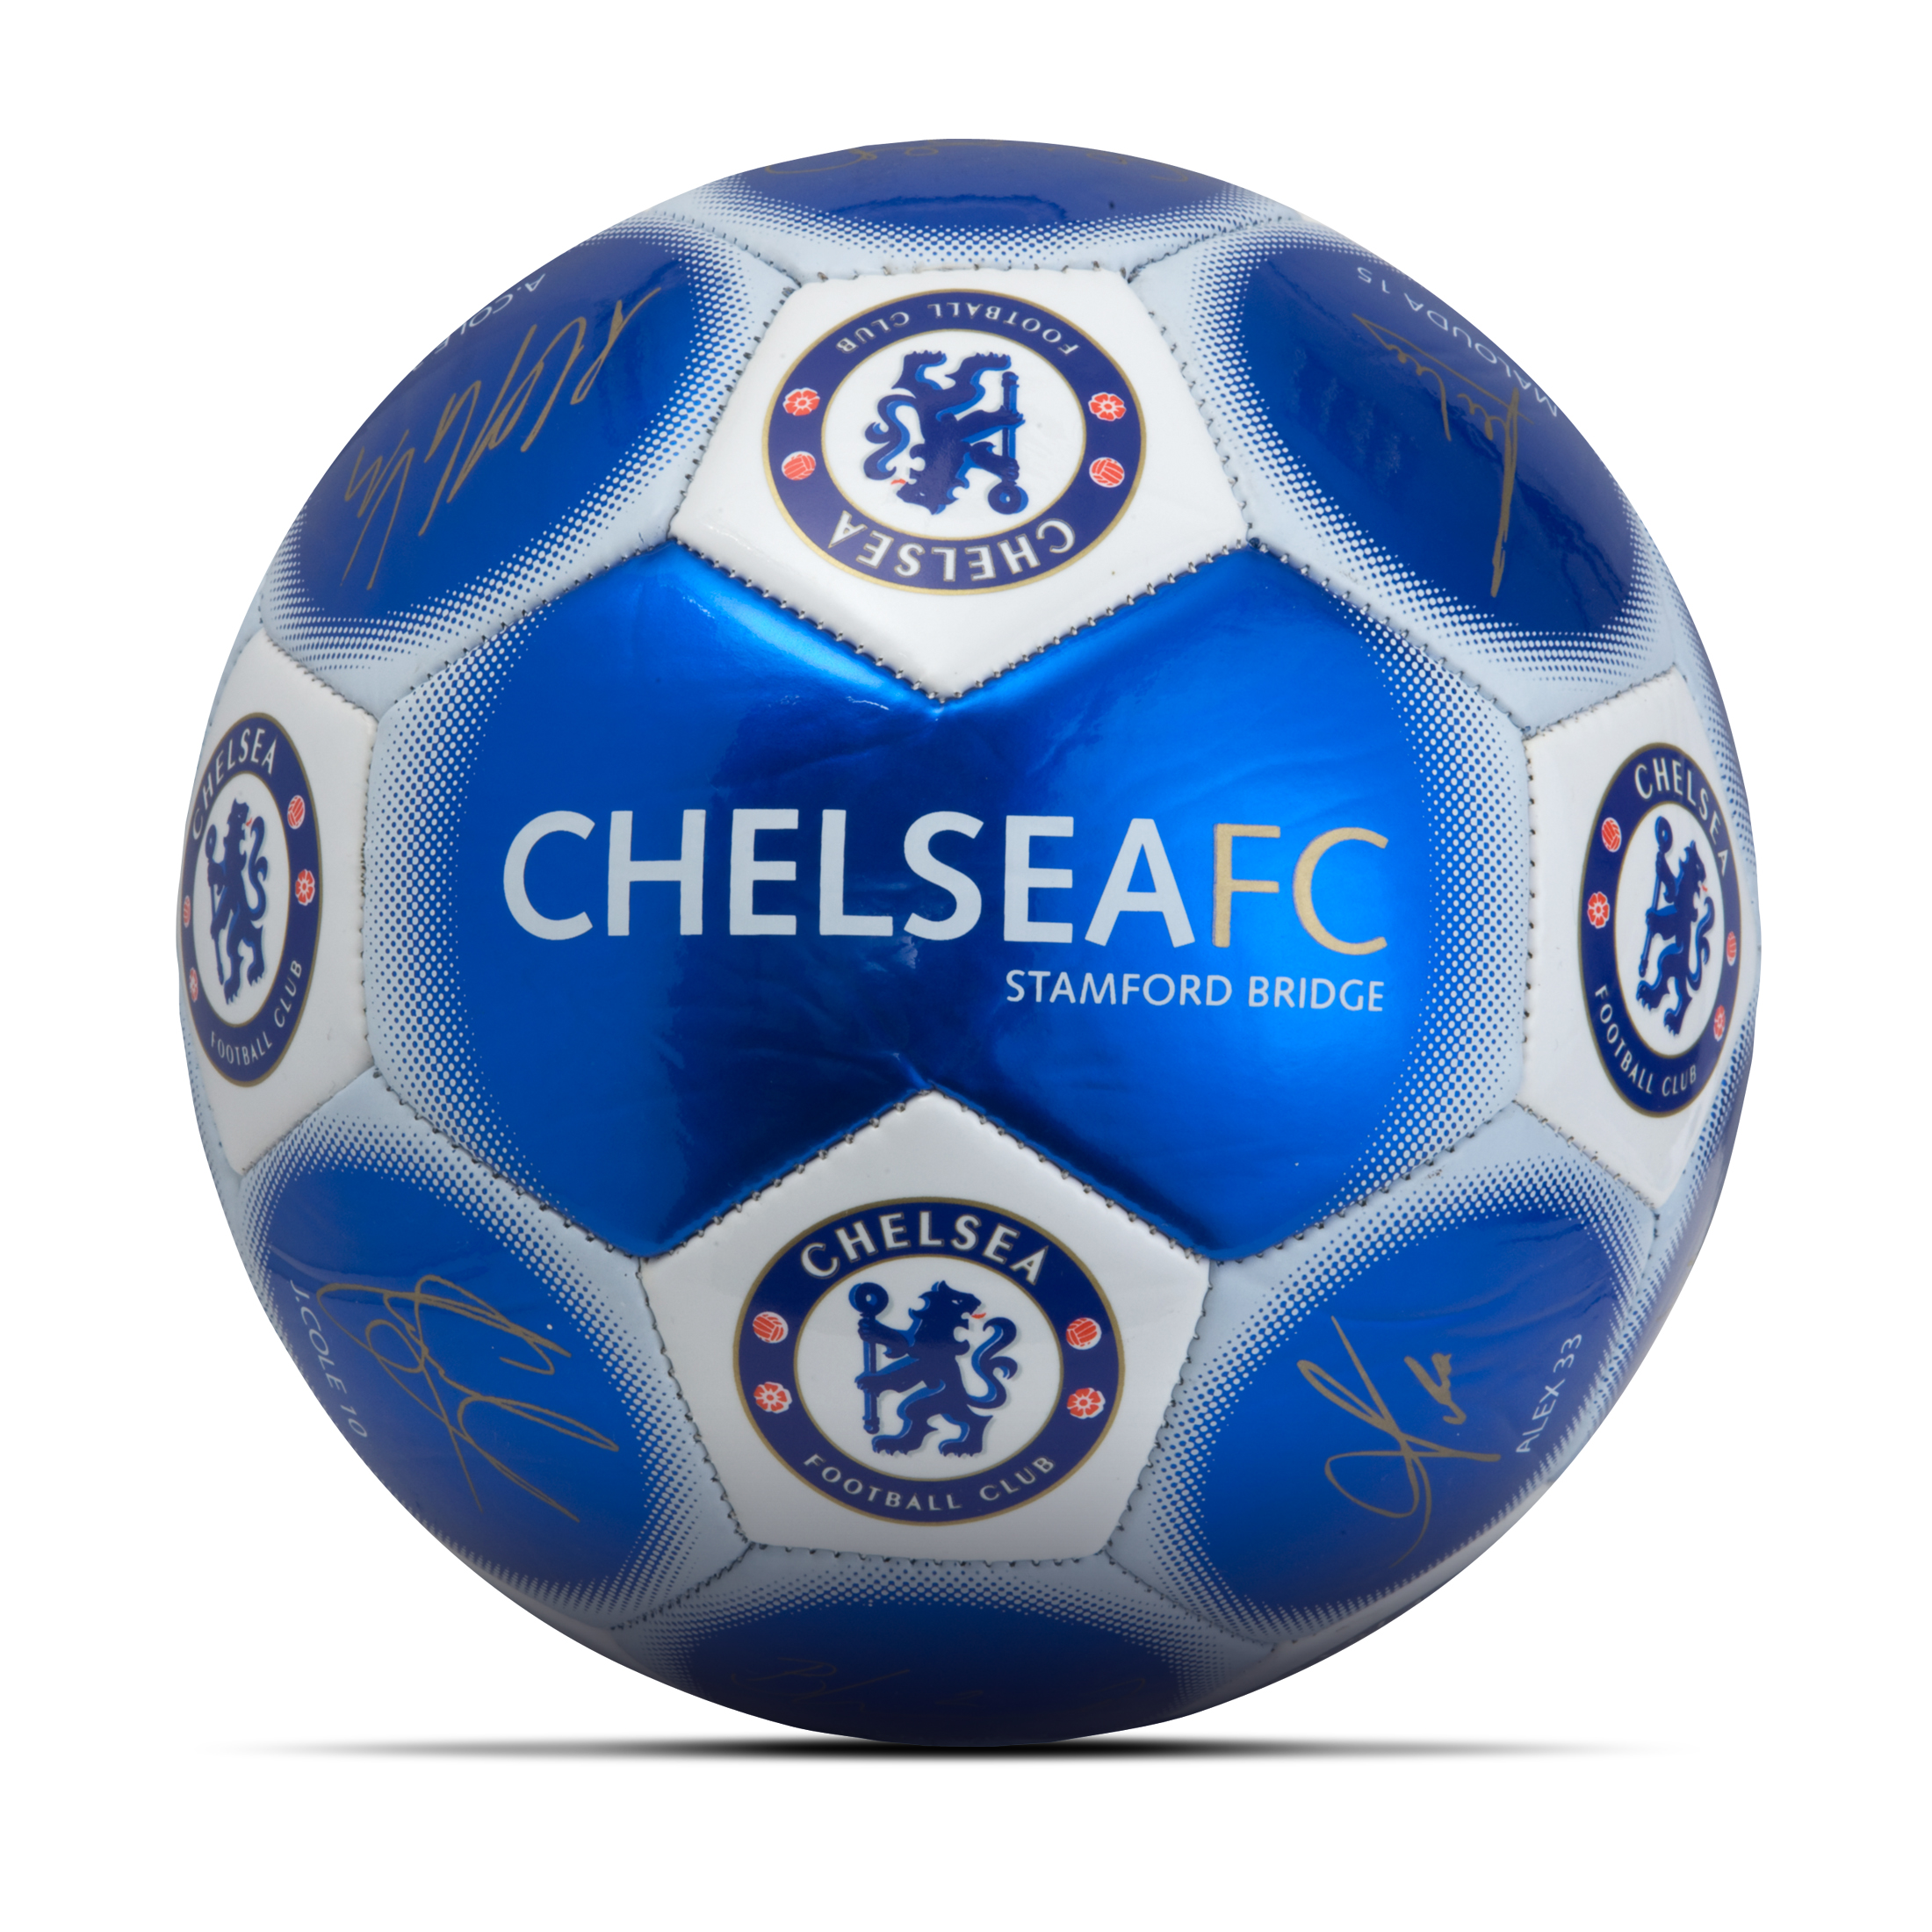 Chelsea Signature Football - Metallic Blue - Size 5